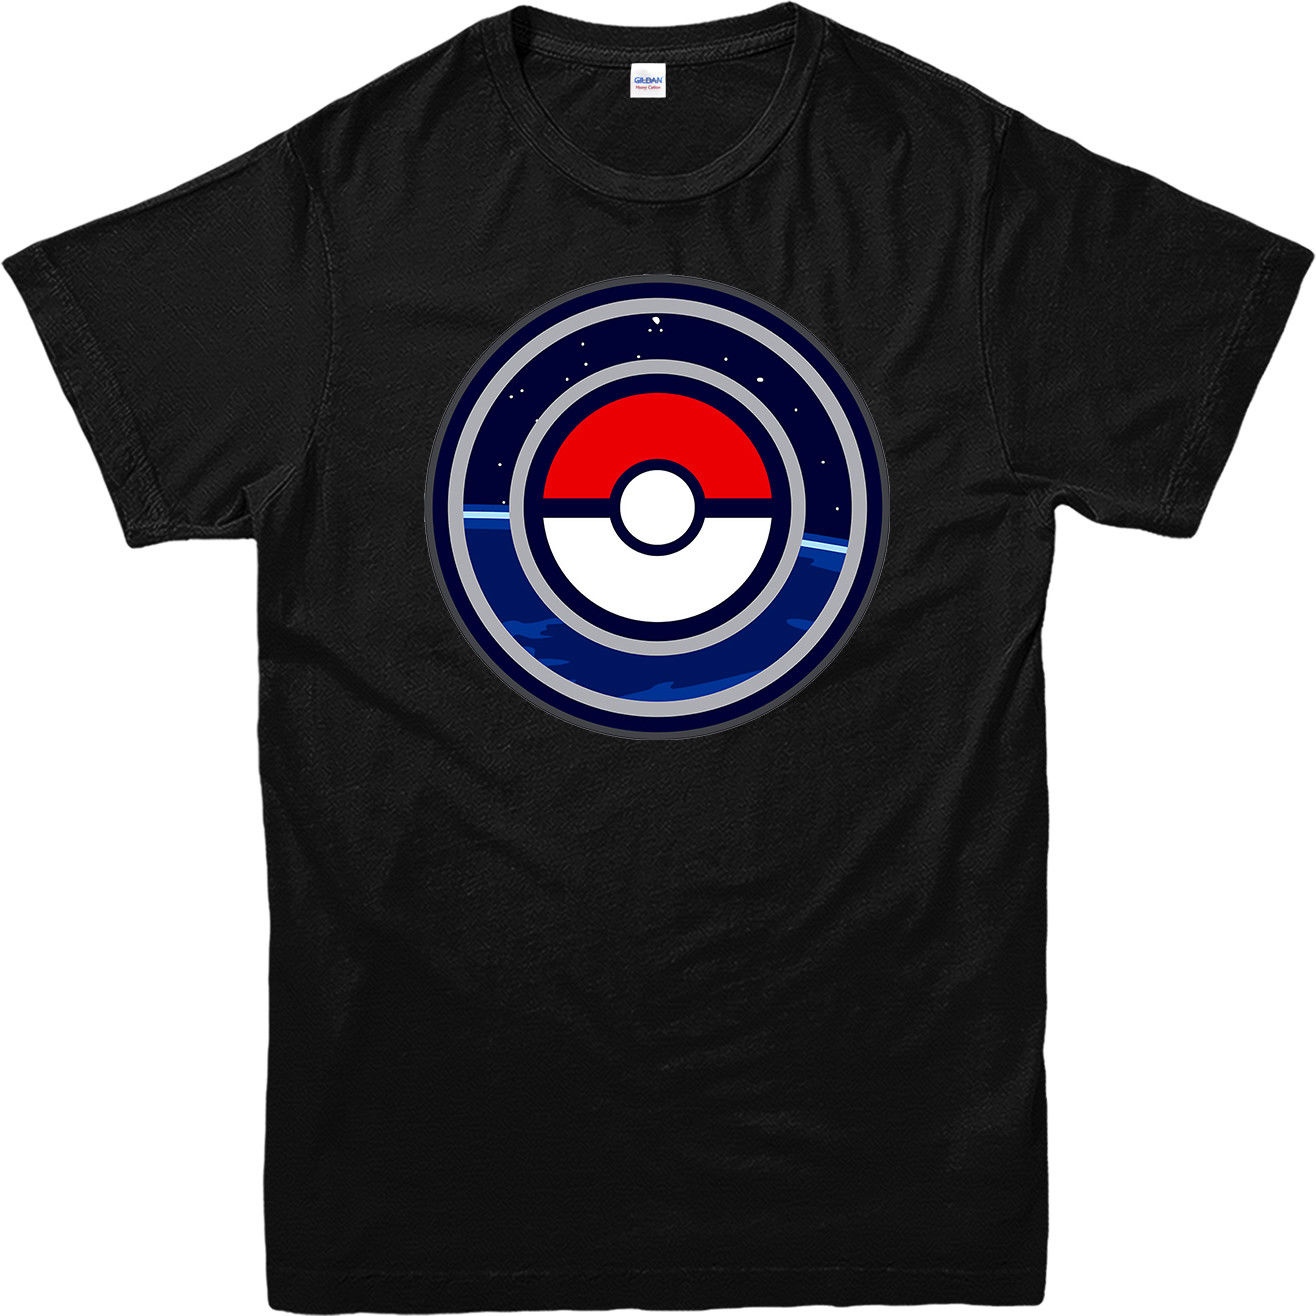 New Pokemon Go - GO Logo *Pikachu Popular Game Mens Black T-Shirt Size S To 3XL T-Shirt Short Sleeve Fashion T Shirt Top Tee